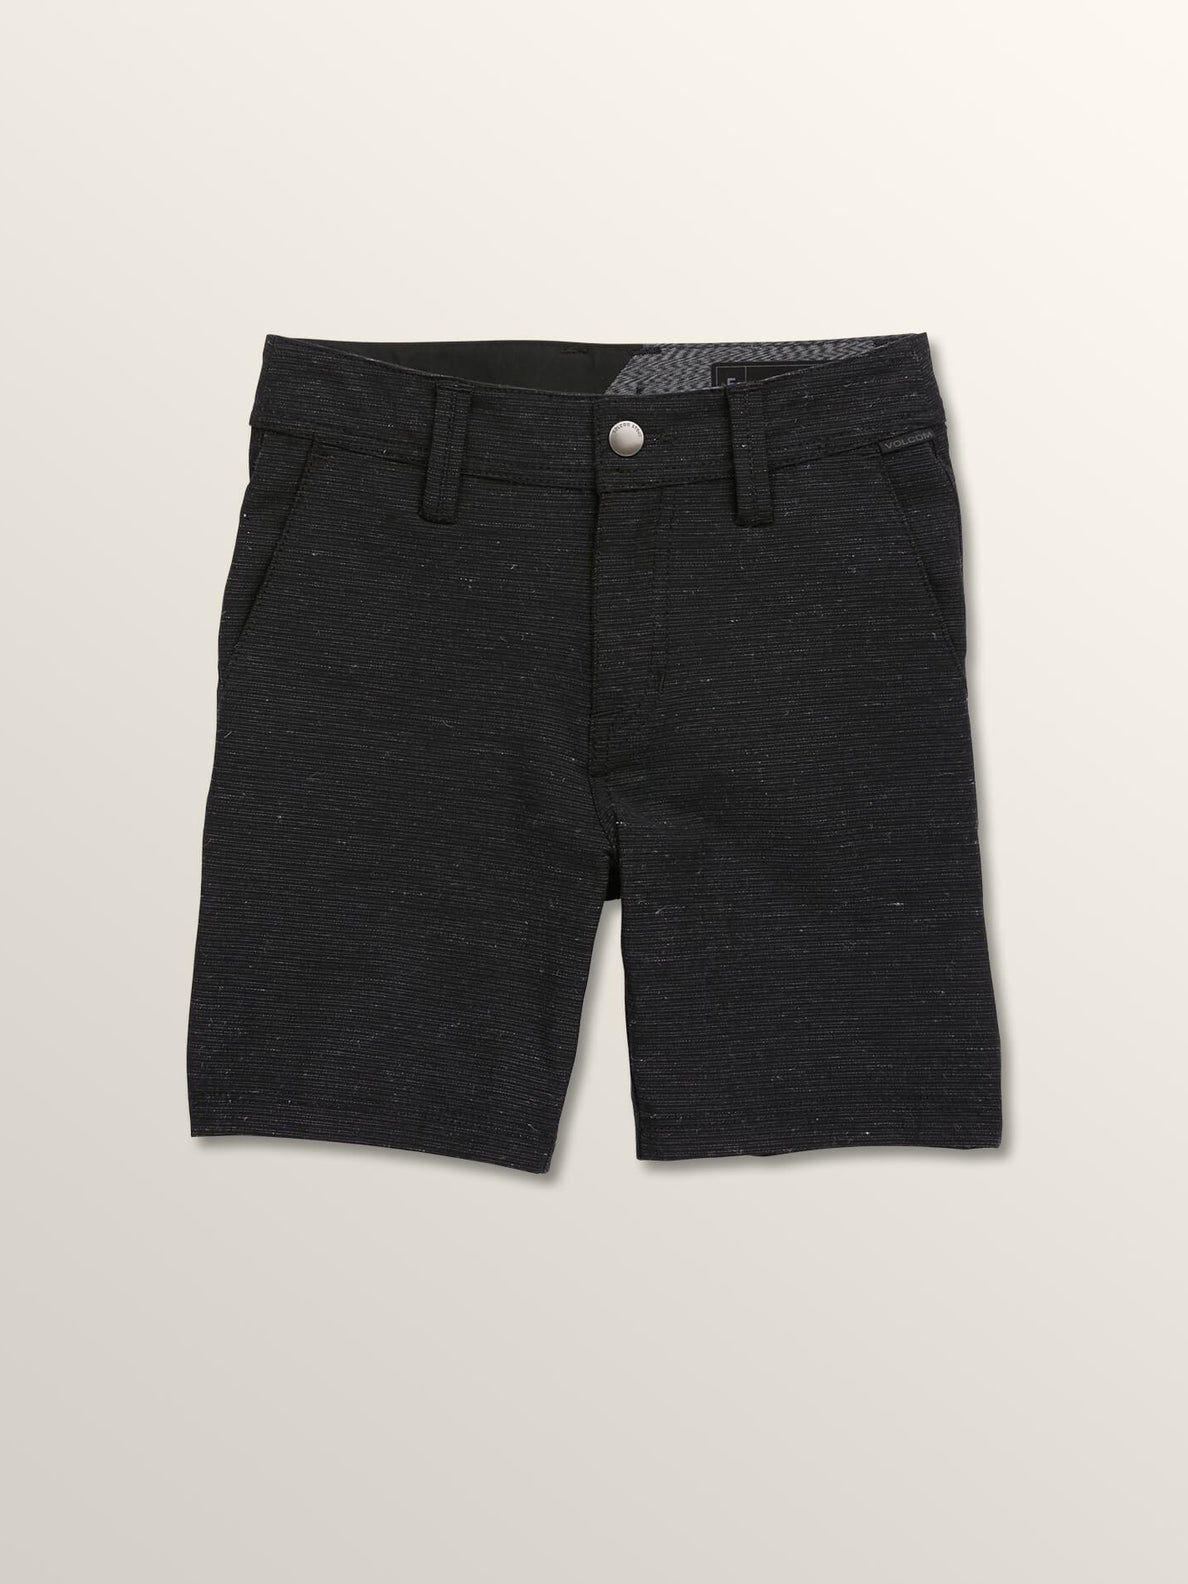 Little Boys Frickin Surf 'N Turf Slub Hybrid Shorts In Black, Front View